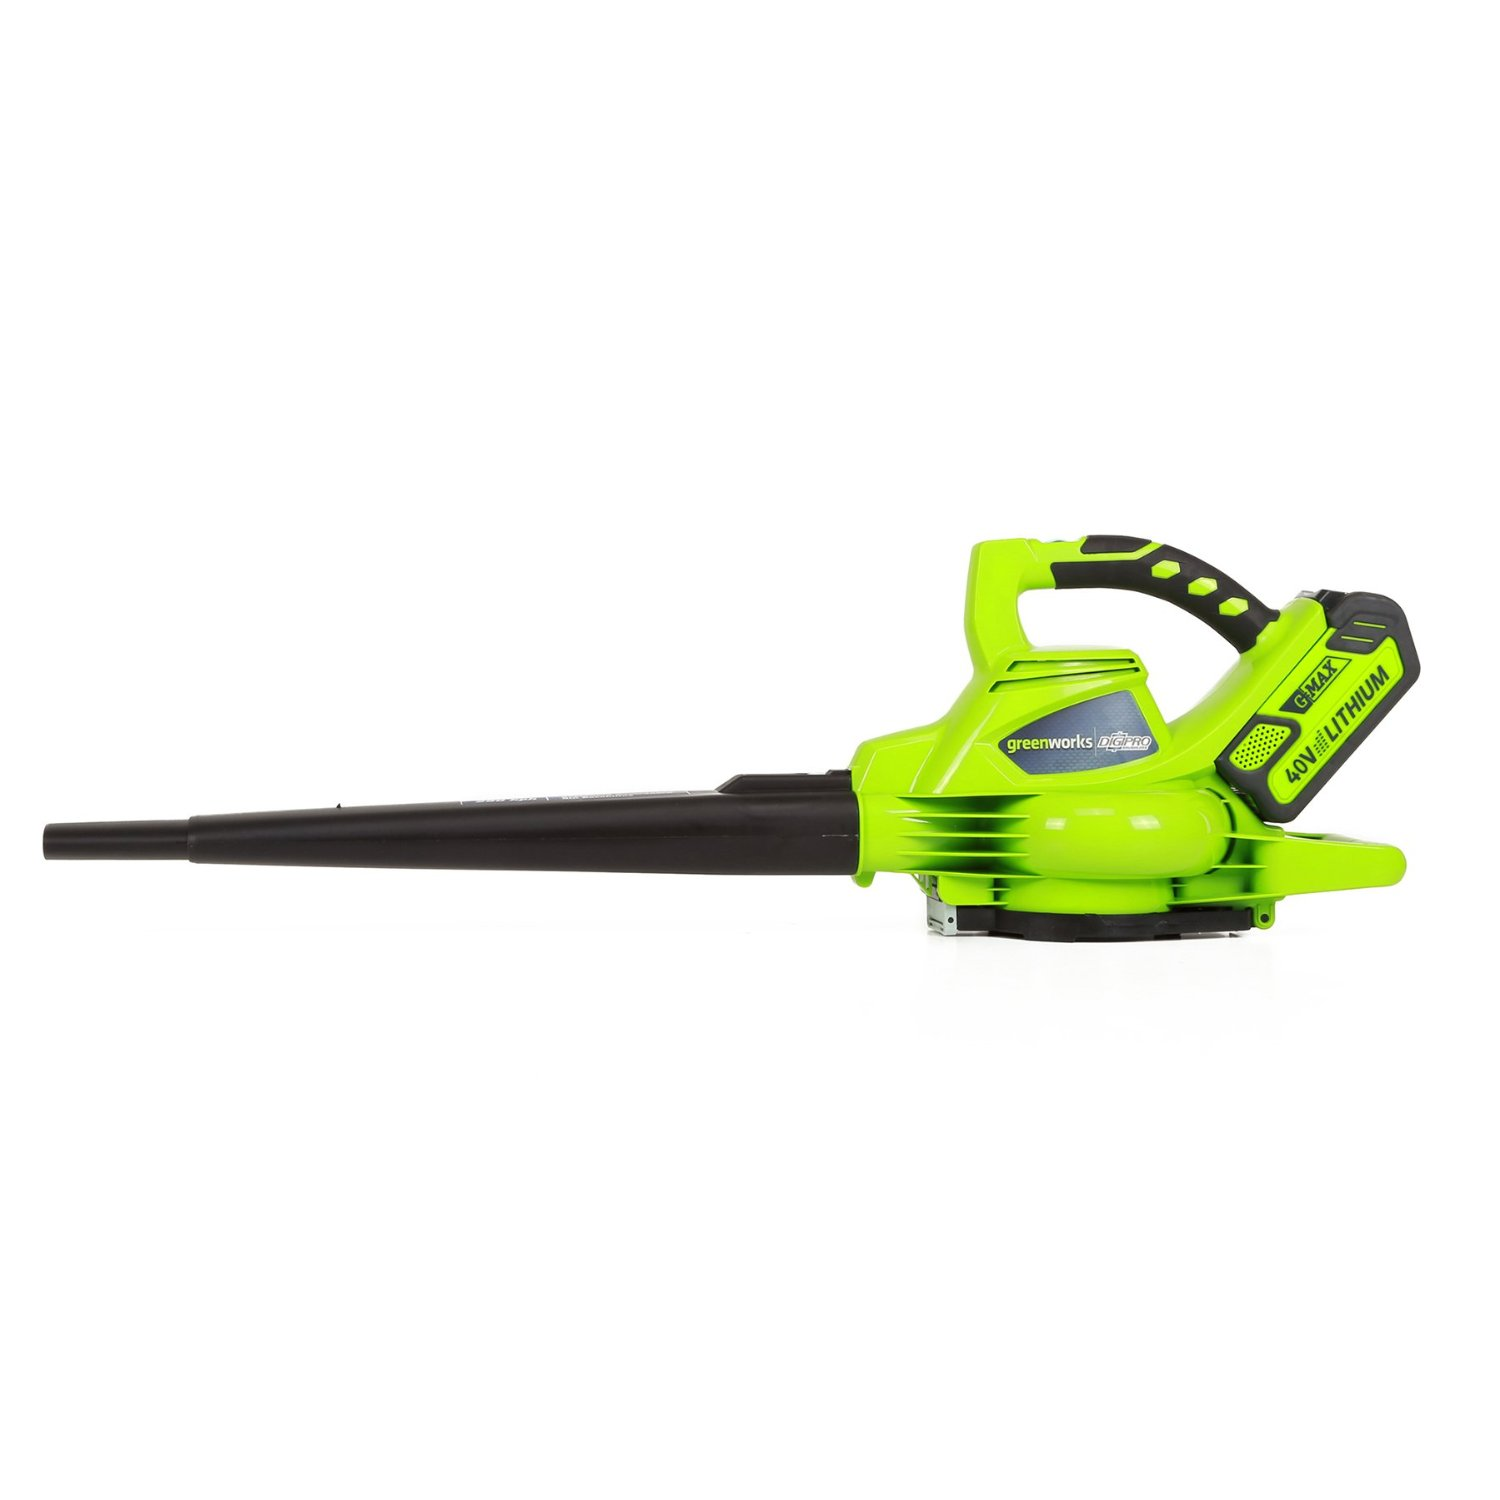 Greenworks G-MAX 40V DigiPro Leaf Vacuum and Blower – Wet/Dry, 185 MPH